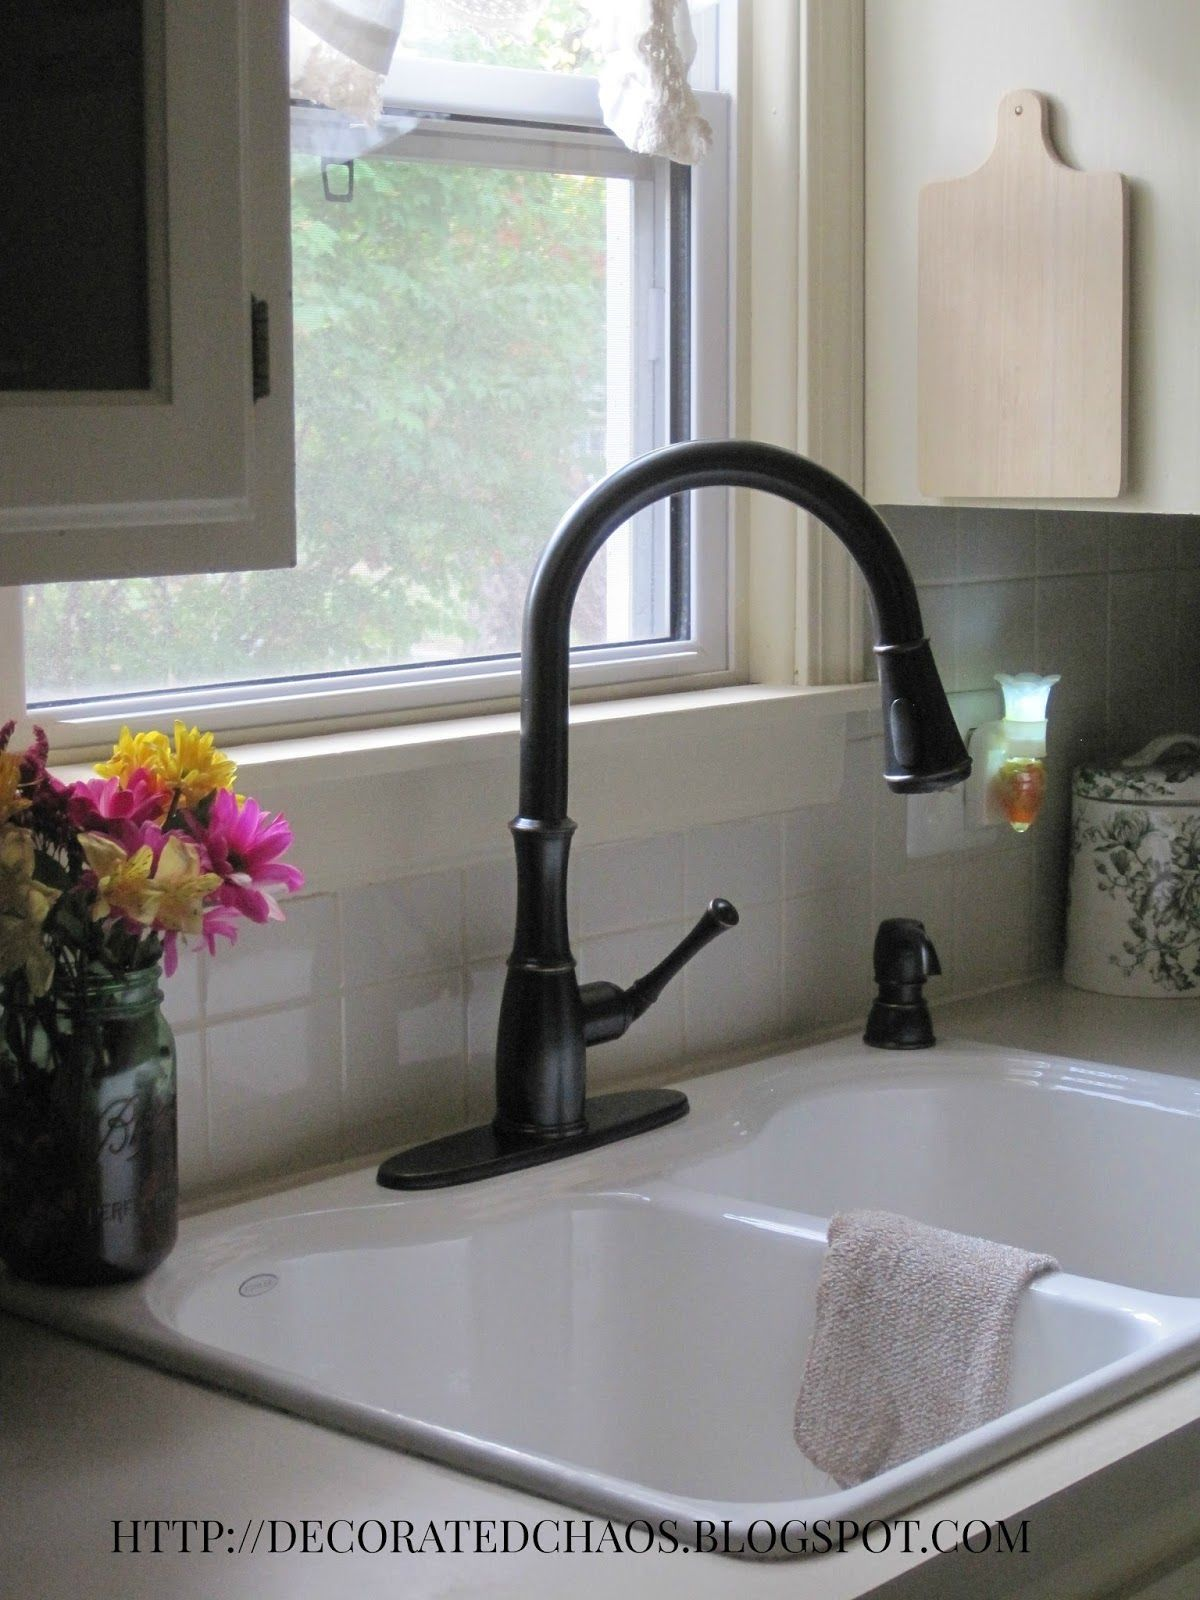 Decorated Chaos-new Pfister faucet in Tuscan Bronze and ...